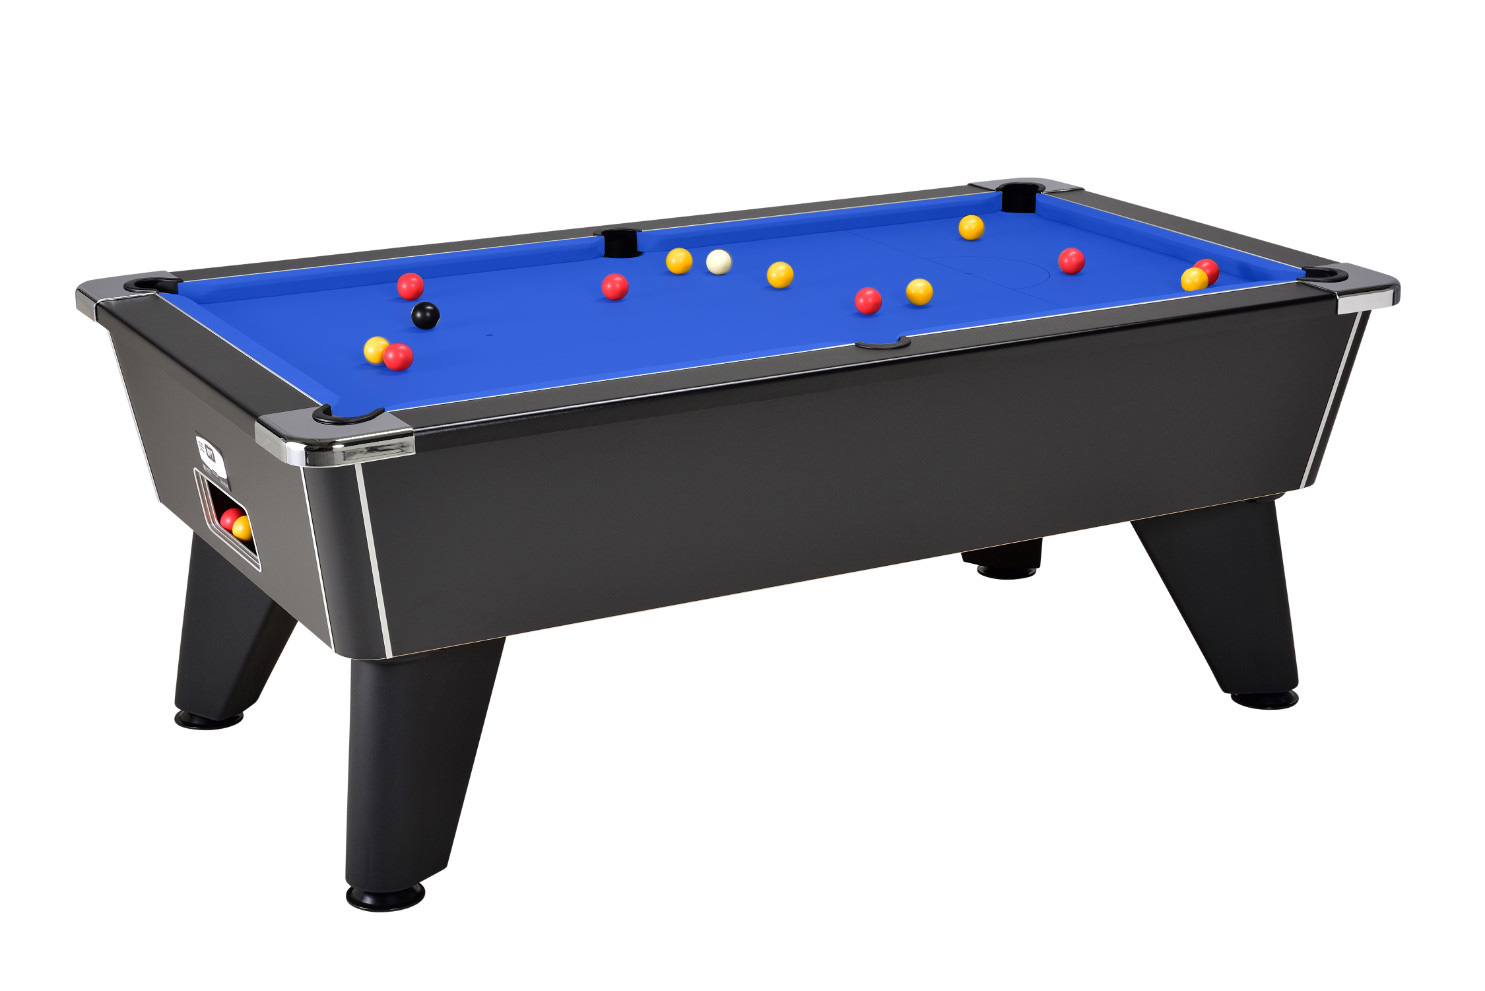 Omega pool table 6 ft 7 ft 8 ft liberty games for 1 inch slate pool table